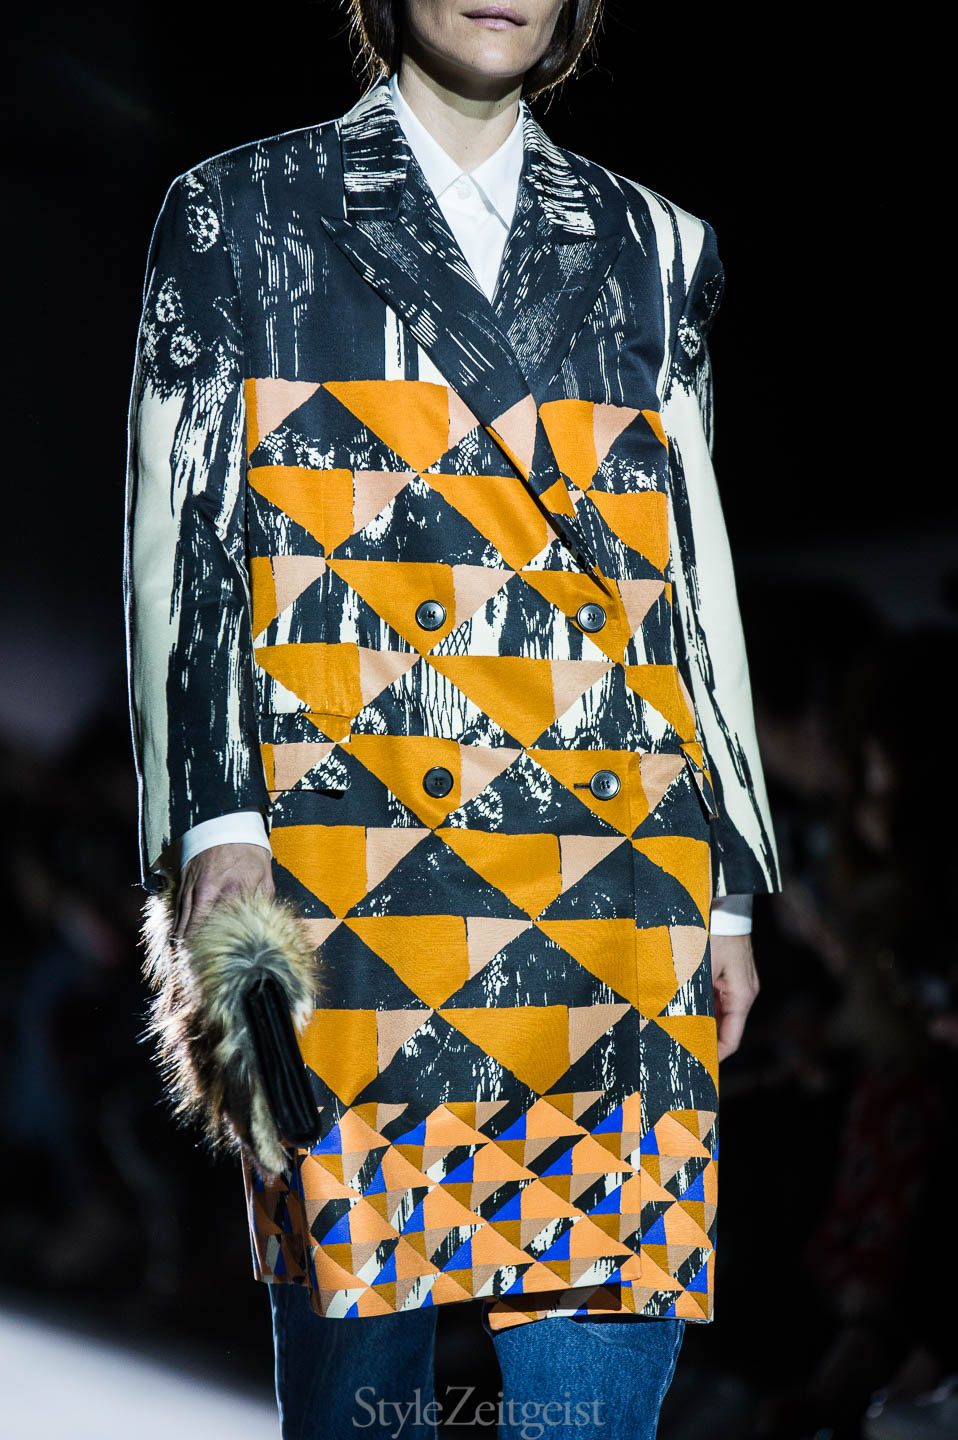 StyleZeitgeist Dries Van Noten F/W17 Women's - Paris Fashion    StyleZeitgeist Dries Van Noten F/W17 Women's - Paris Fashion    StyleZeitgeist Dries Van Noten F/W17 Women's - Paris Fashion    StyleZeitgeist Dries Van Noten F/W17 Women's - Paris Fashion    StyleZeitgeist Dries Van Noten F/W17 Women's - Paris Fashion    StyleZeitgeist Dries Van Noten F/W17 Women's - Paris Fashion    StyleZeitgeist Dries Van Noten F/W17 Women's - Paris Fashion    StyleZeitgeist Dries Van Noten F/W17 Women's - Paris Fashion